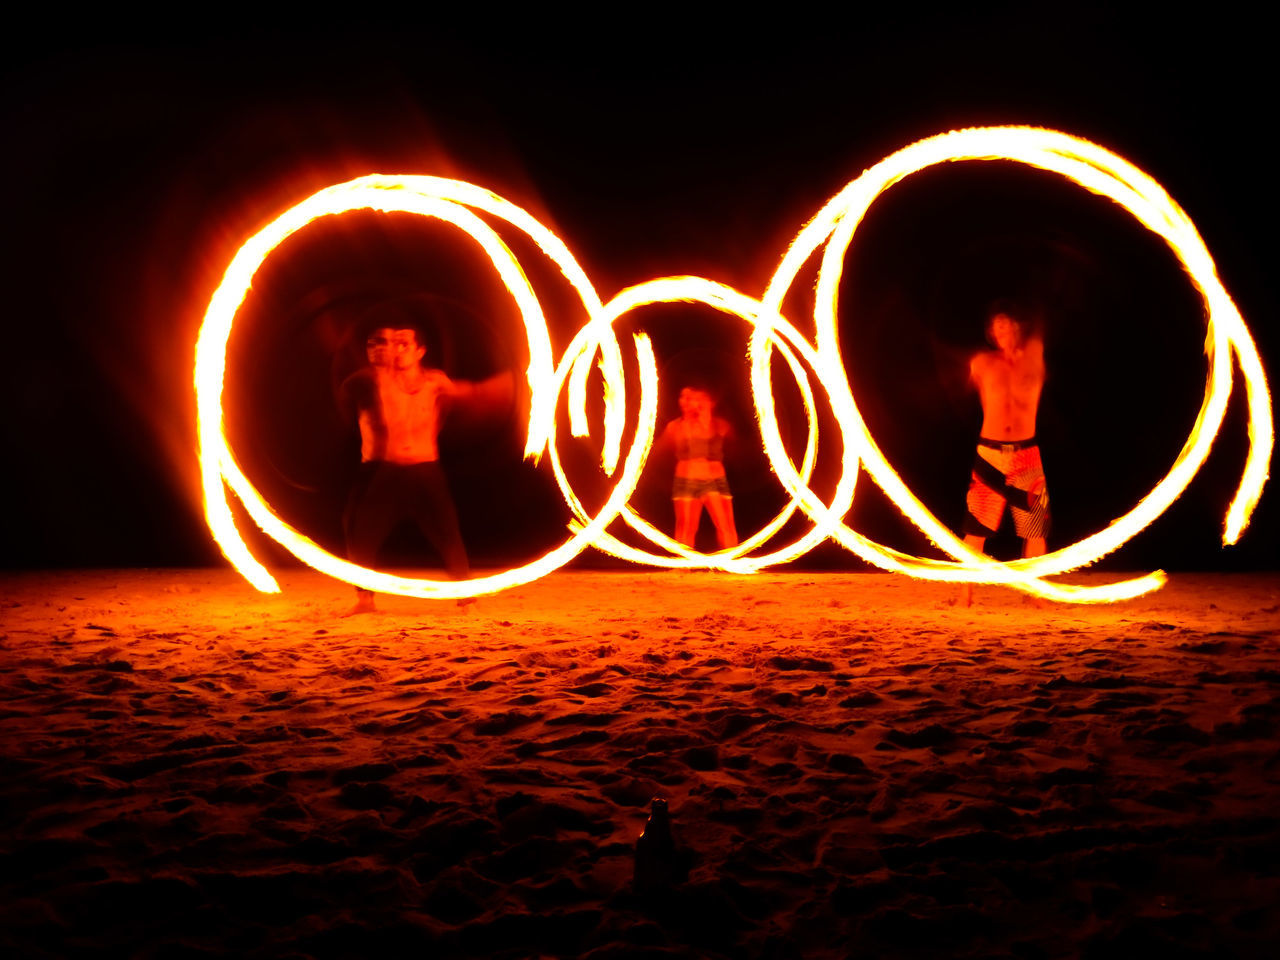 Photography In Motion Eyeem Philippines Eyeemphotography Beachatnight FireDancers EyeEm